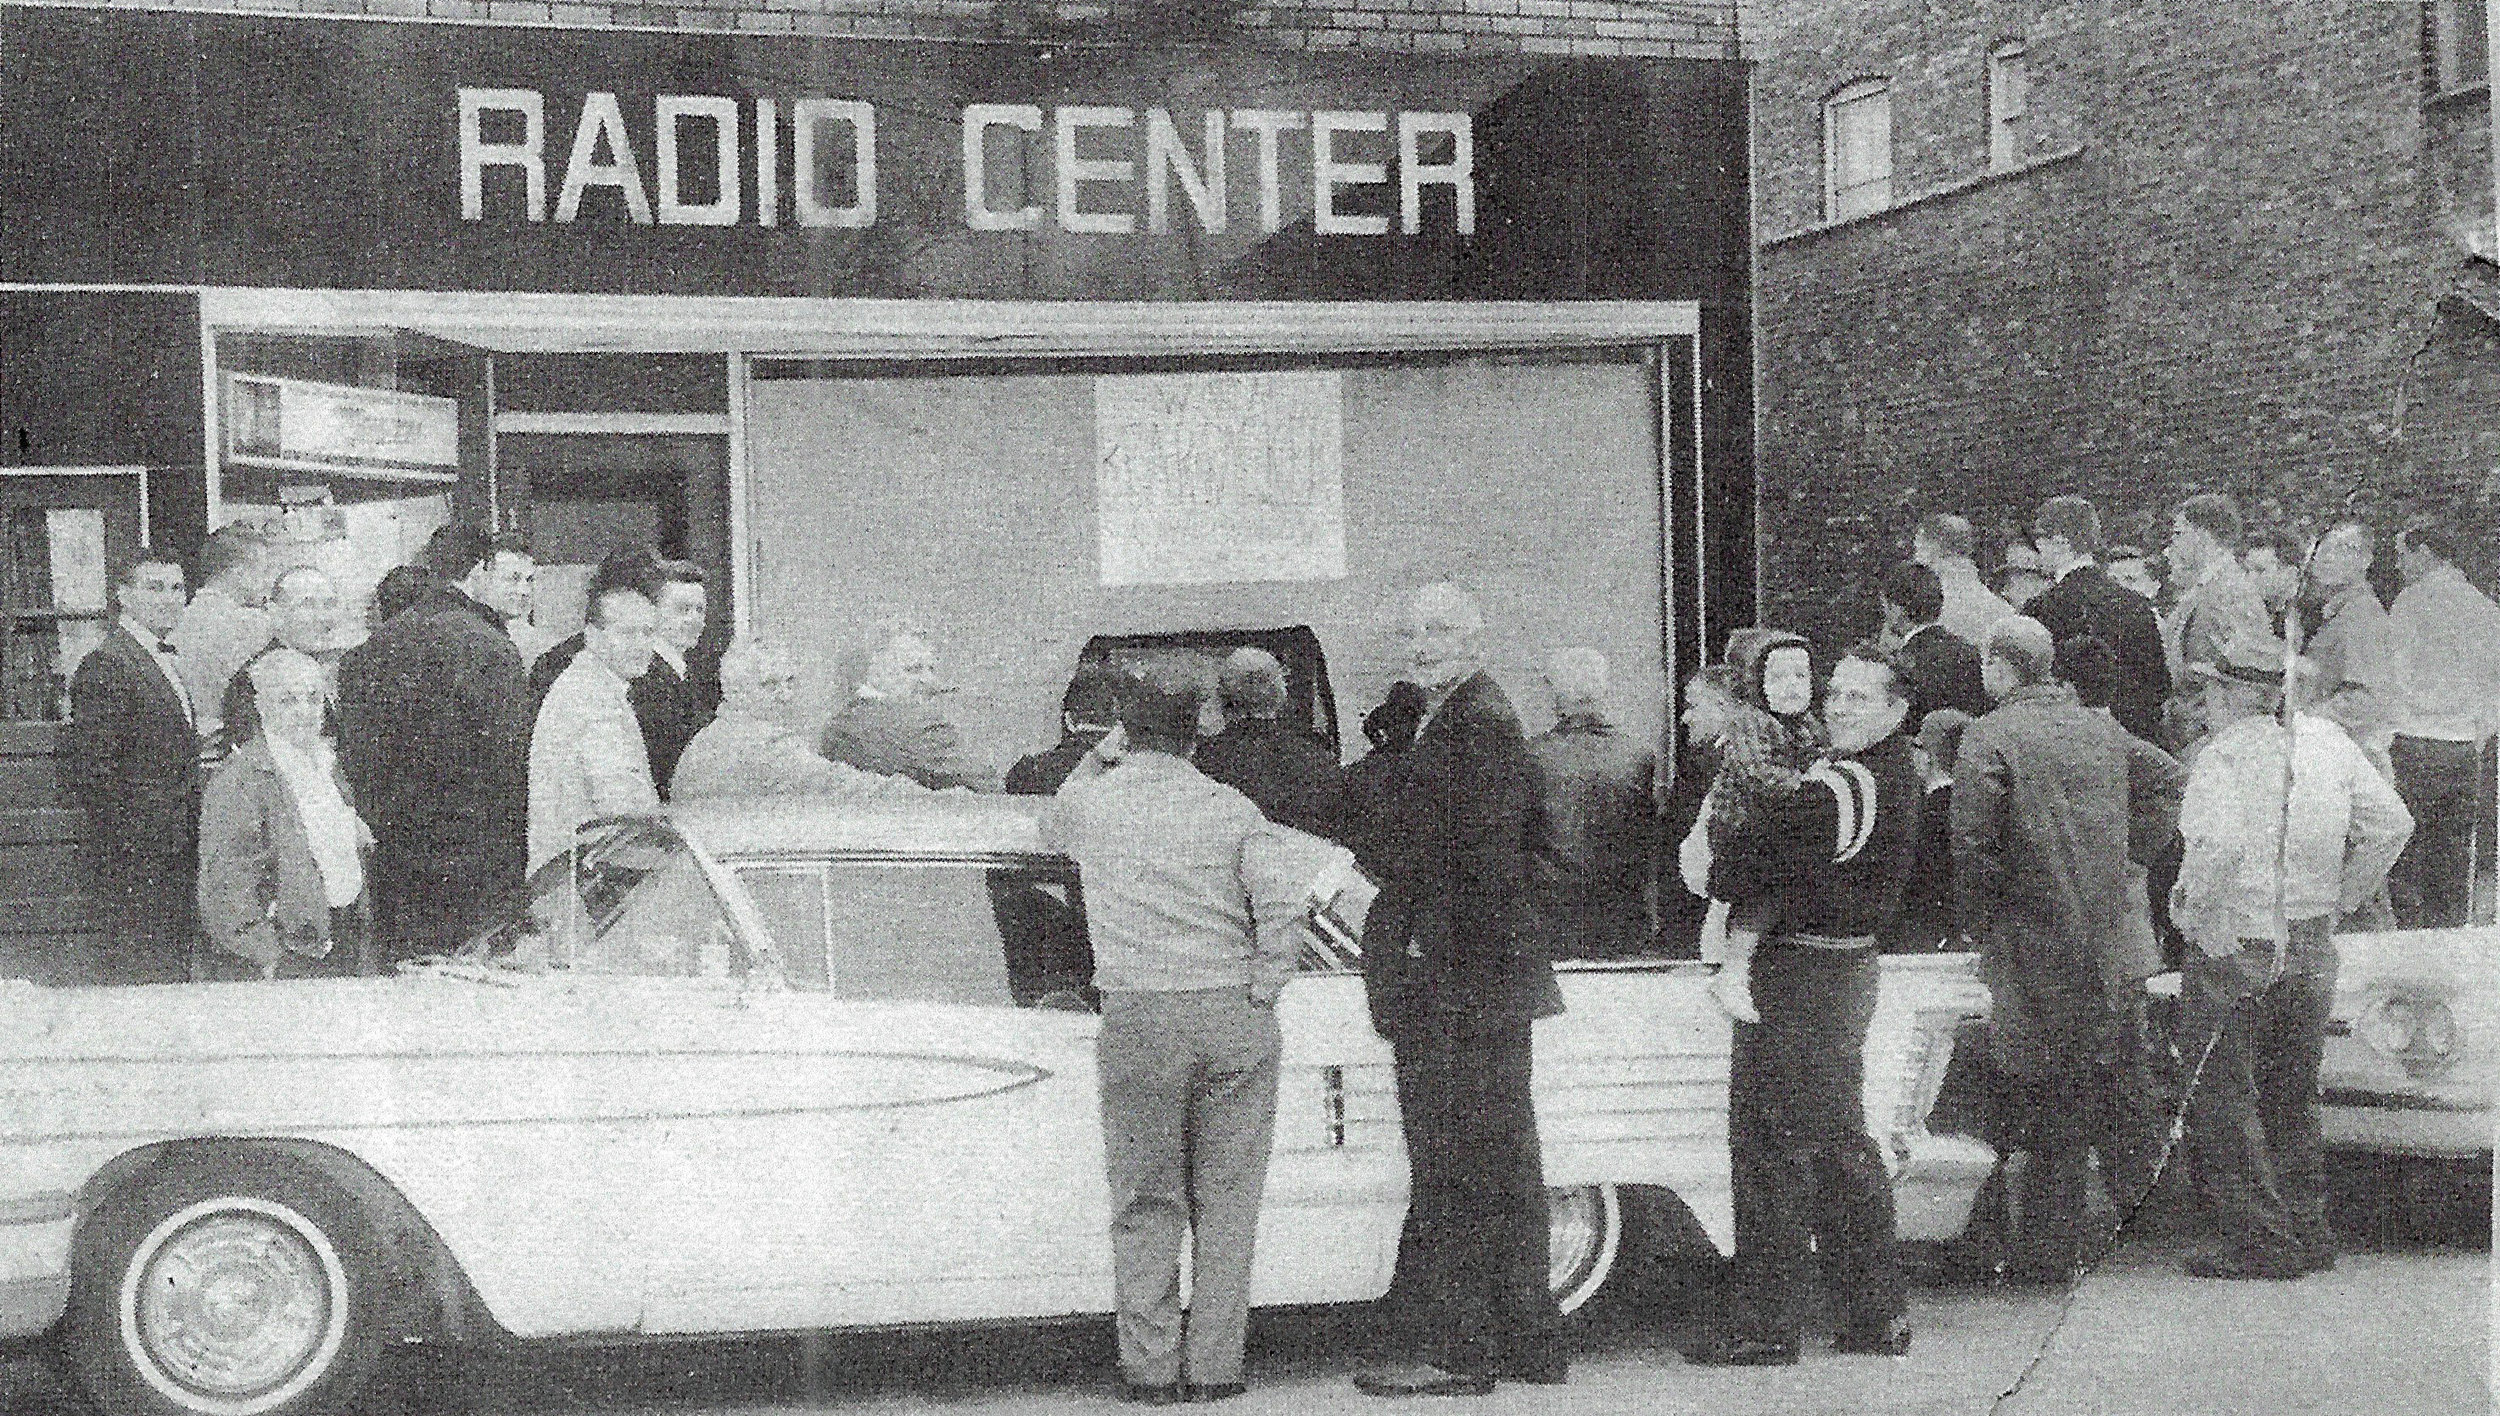 In November 1963, the game between the Chicago Bears and Green Bay Packers was blacked out in the Chicago area. So, John Kiraly, of the Radio Center (1542 119th Street) pulled in a signal from a South Bend television station and displayed it on a TV screen in the front window of his shop, drawing a crowd of football fans to watch. (Times-Grafic photograph)